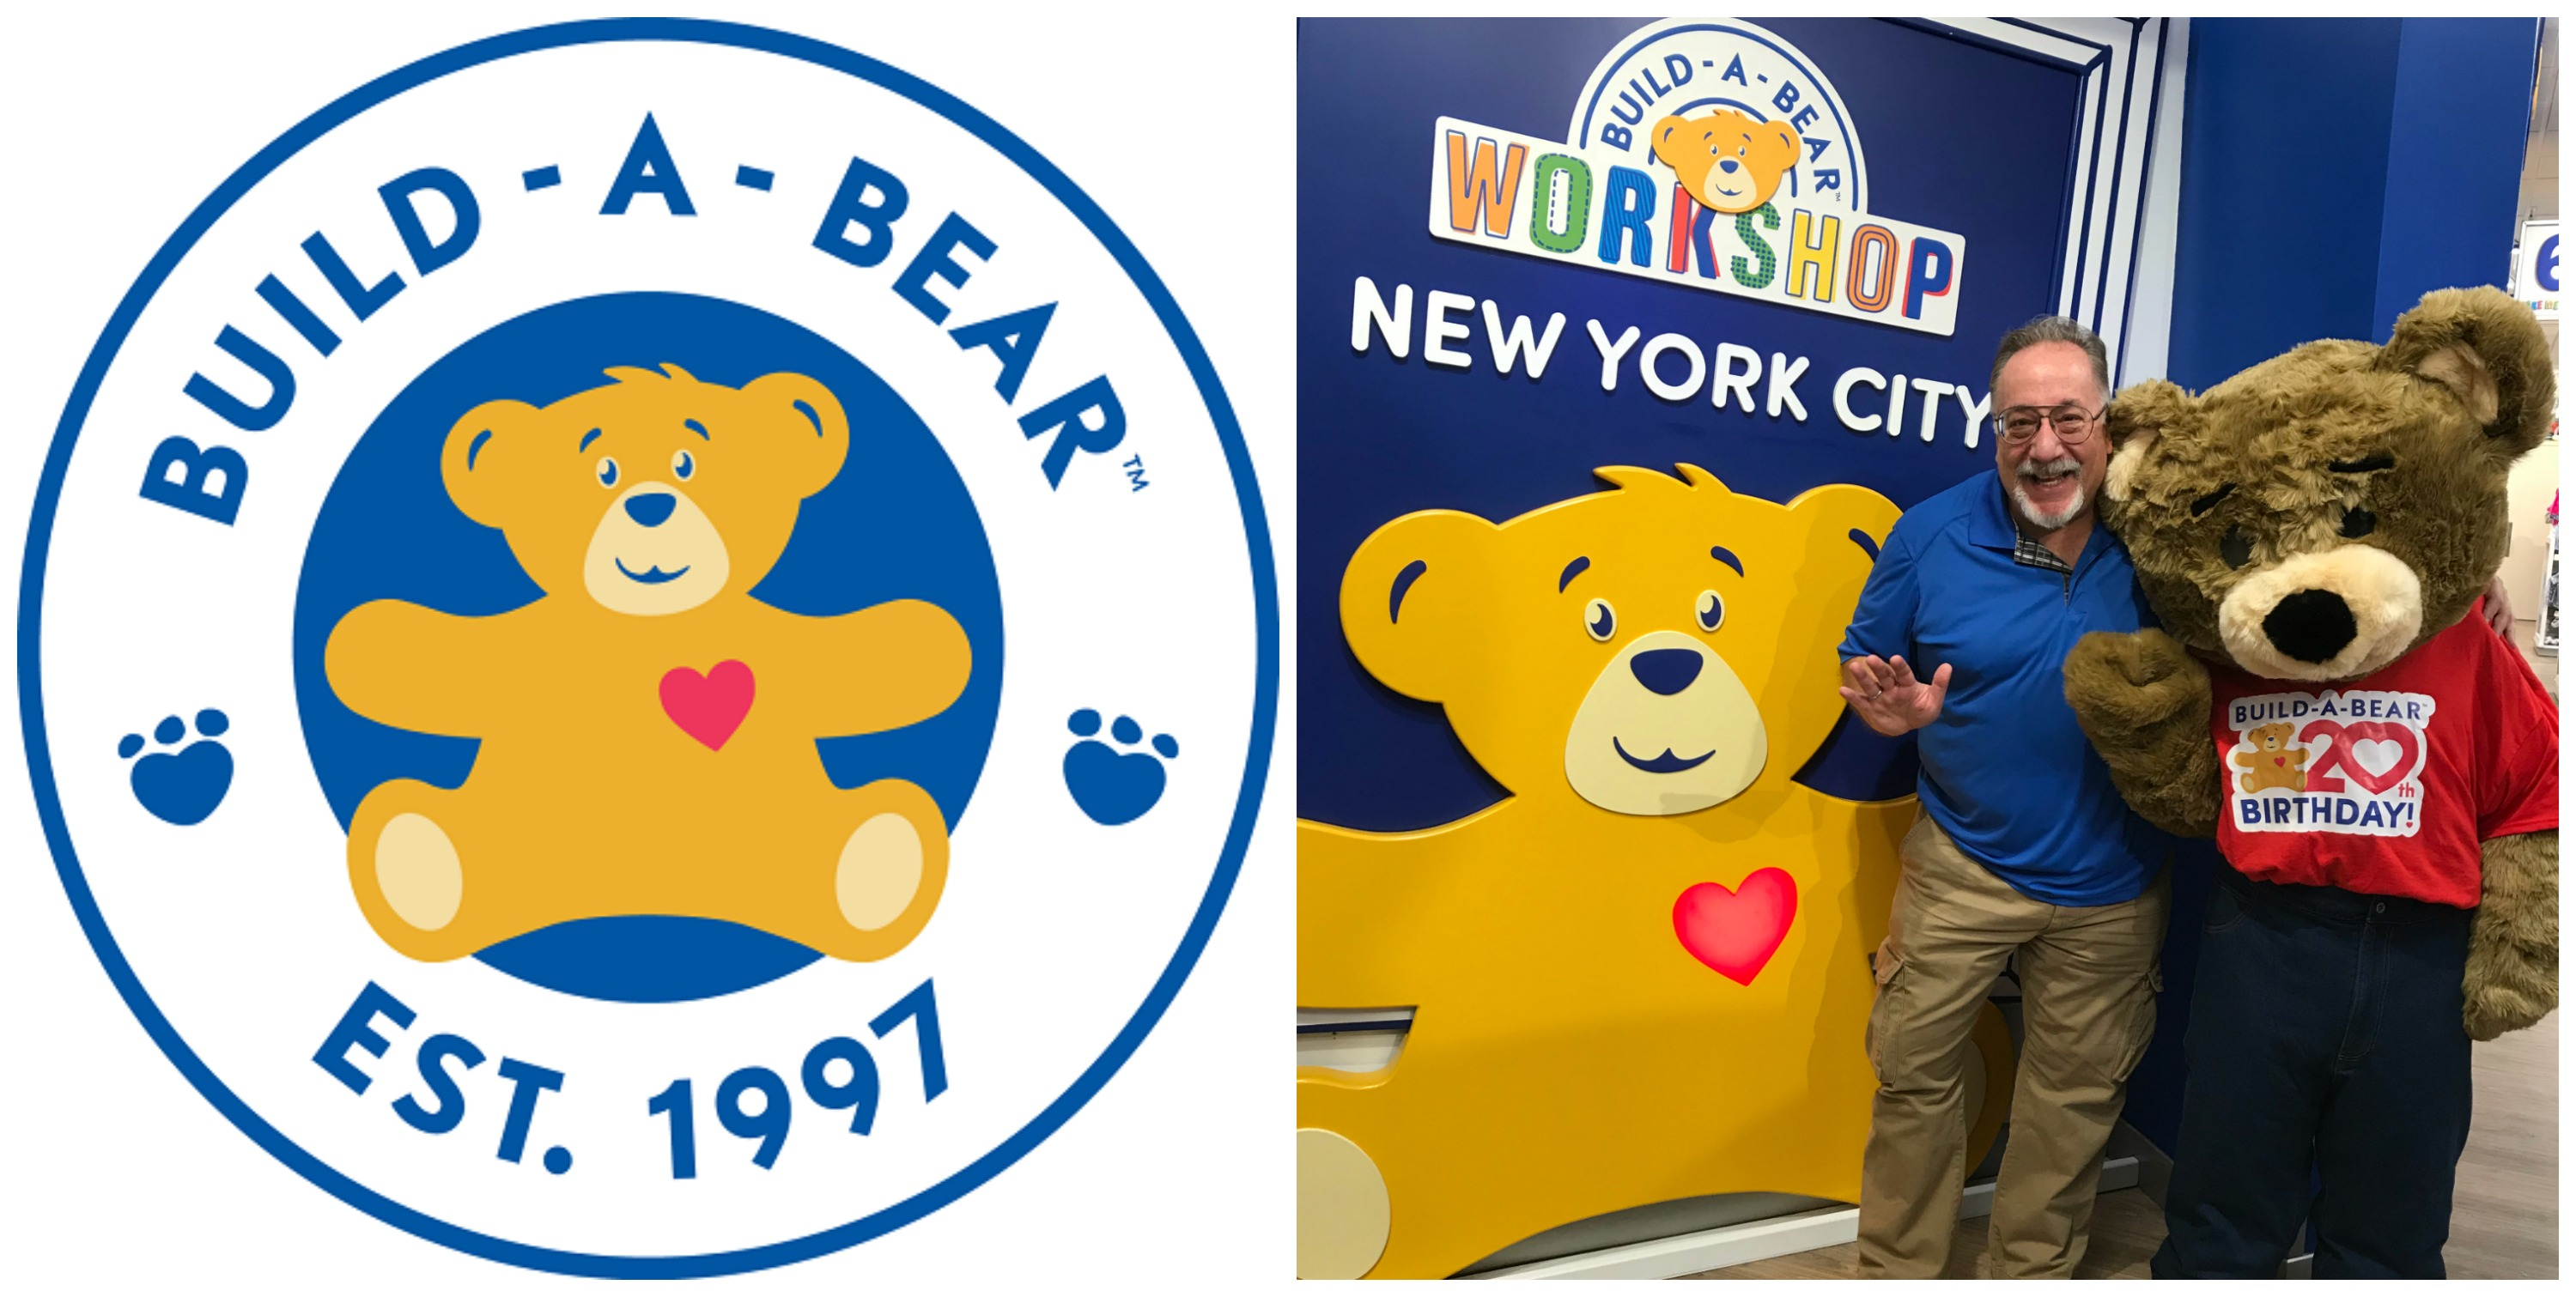 how to celebrate birthday with build a bear